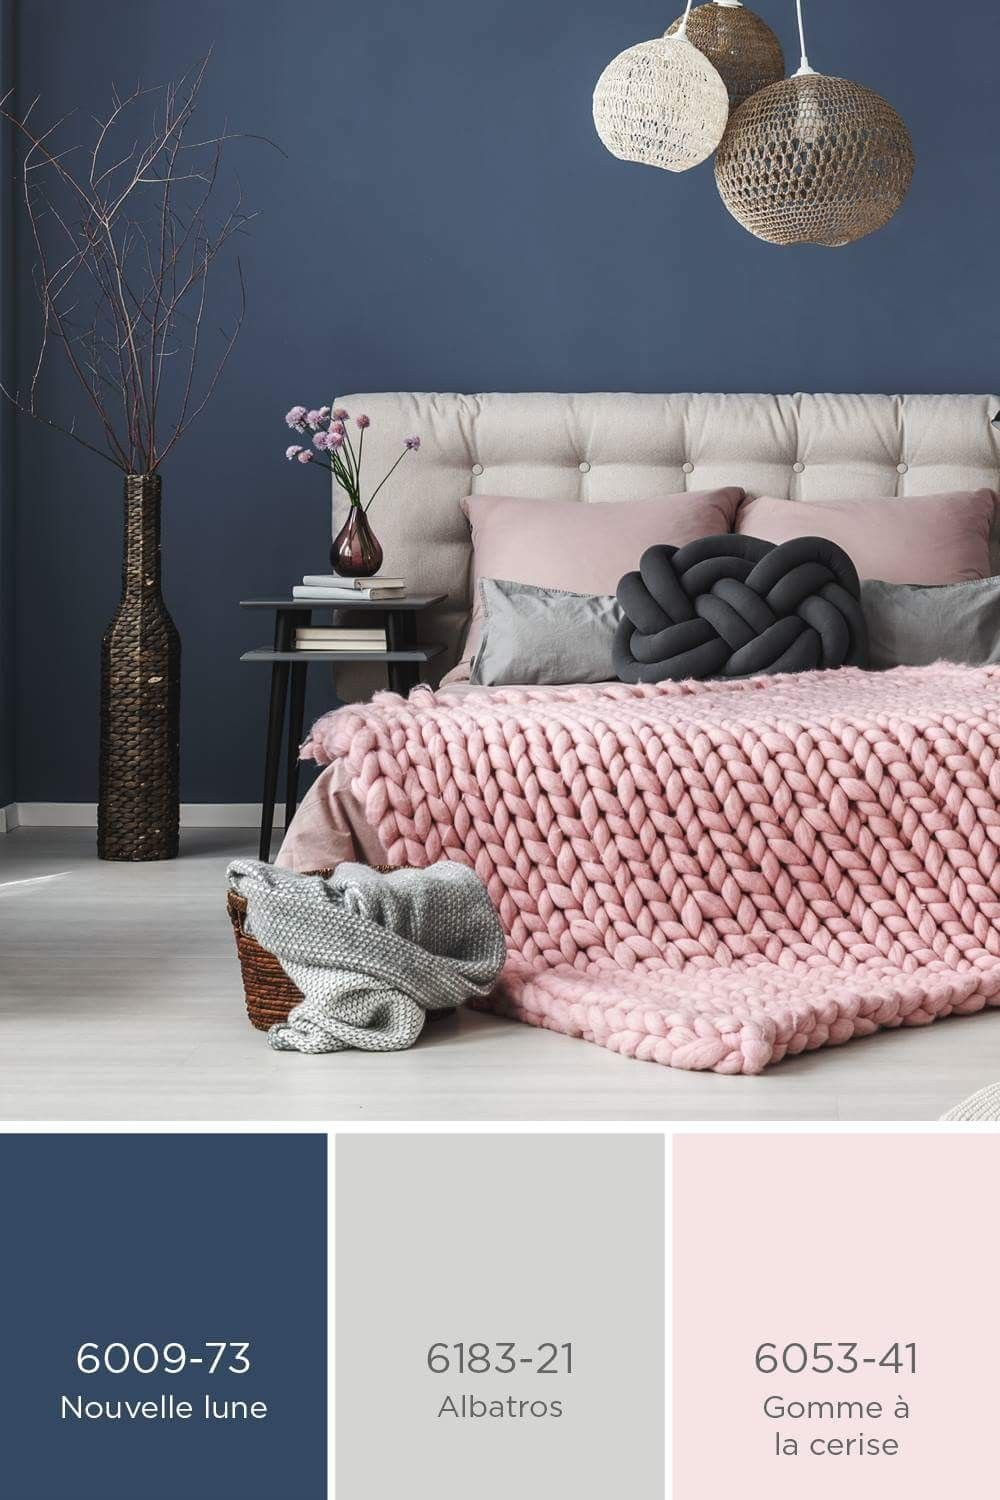 Pin By Kelly Dyer On Paint Colors Living Room Color Schemes Bedroom Color Schemes Living Room Color